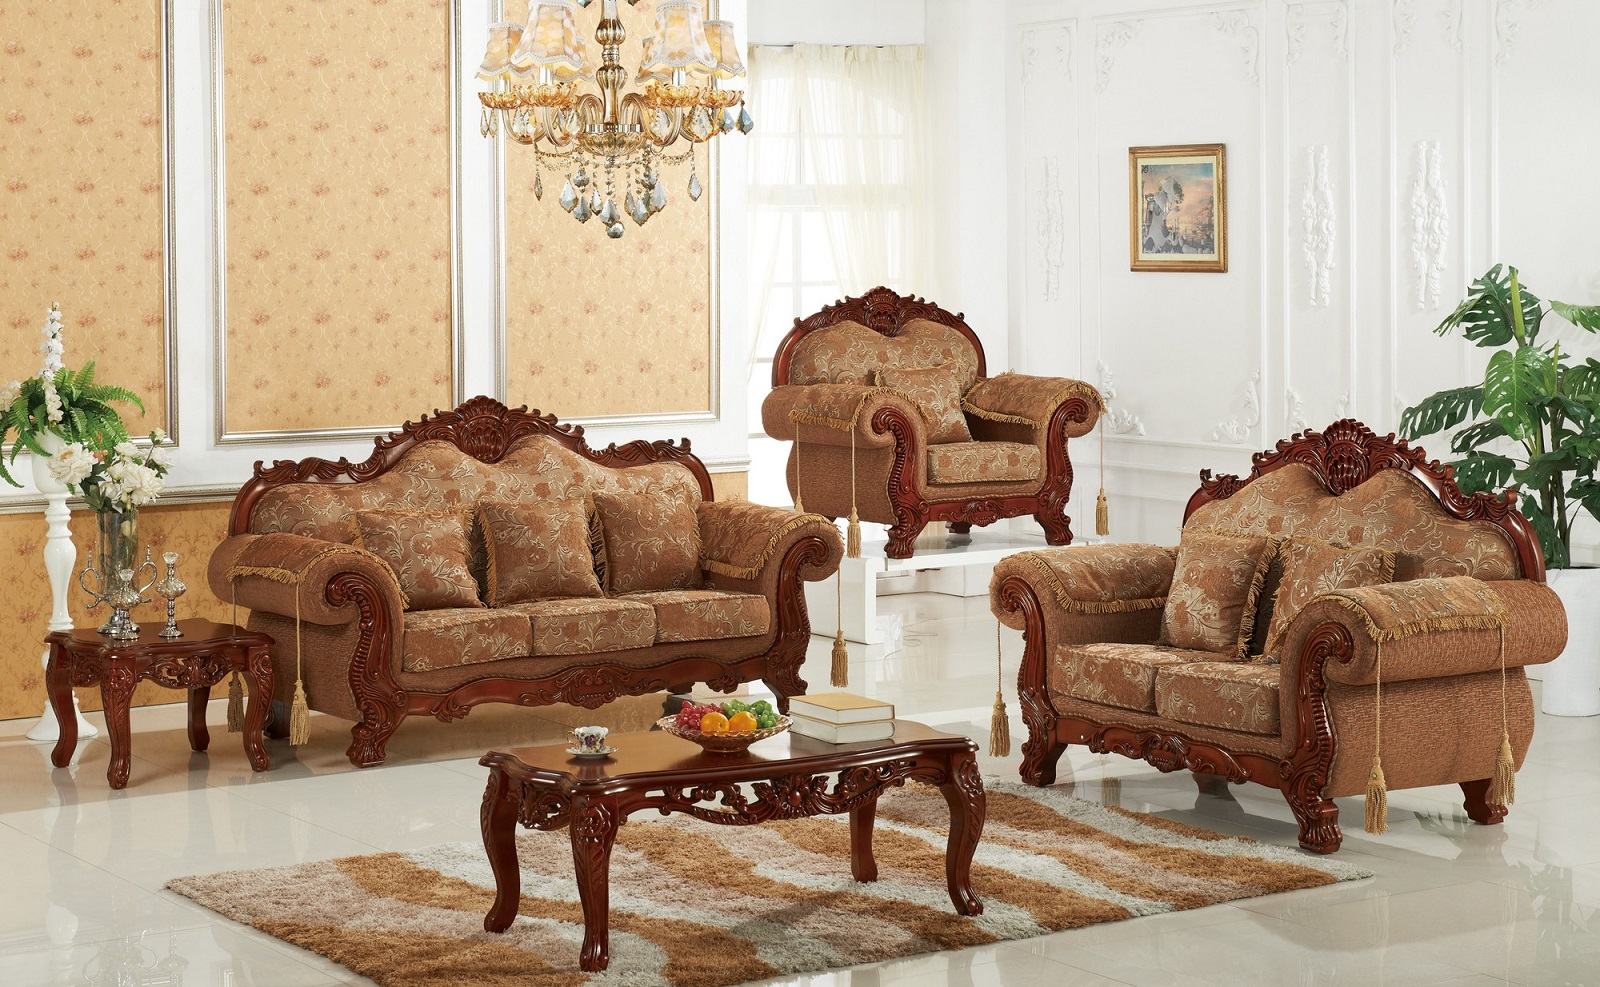 Sofa Set Living Room Furniture Cherry Finish Traditional Sofa Loveseat  Formal Plush Cushioned Seating Armrest Pillows   Walmart.com